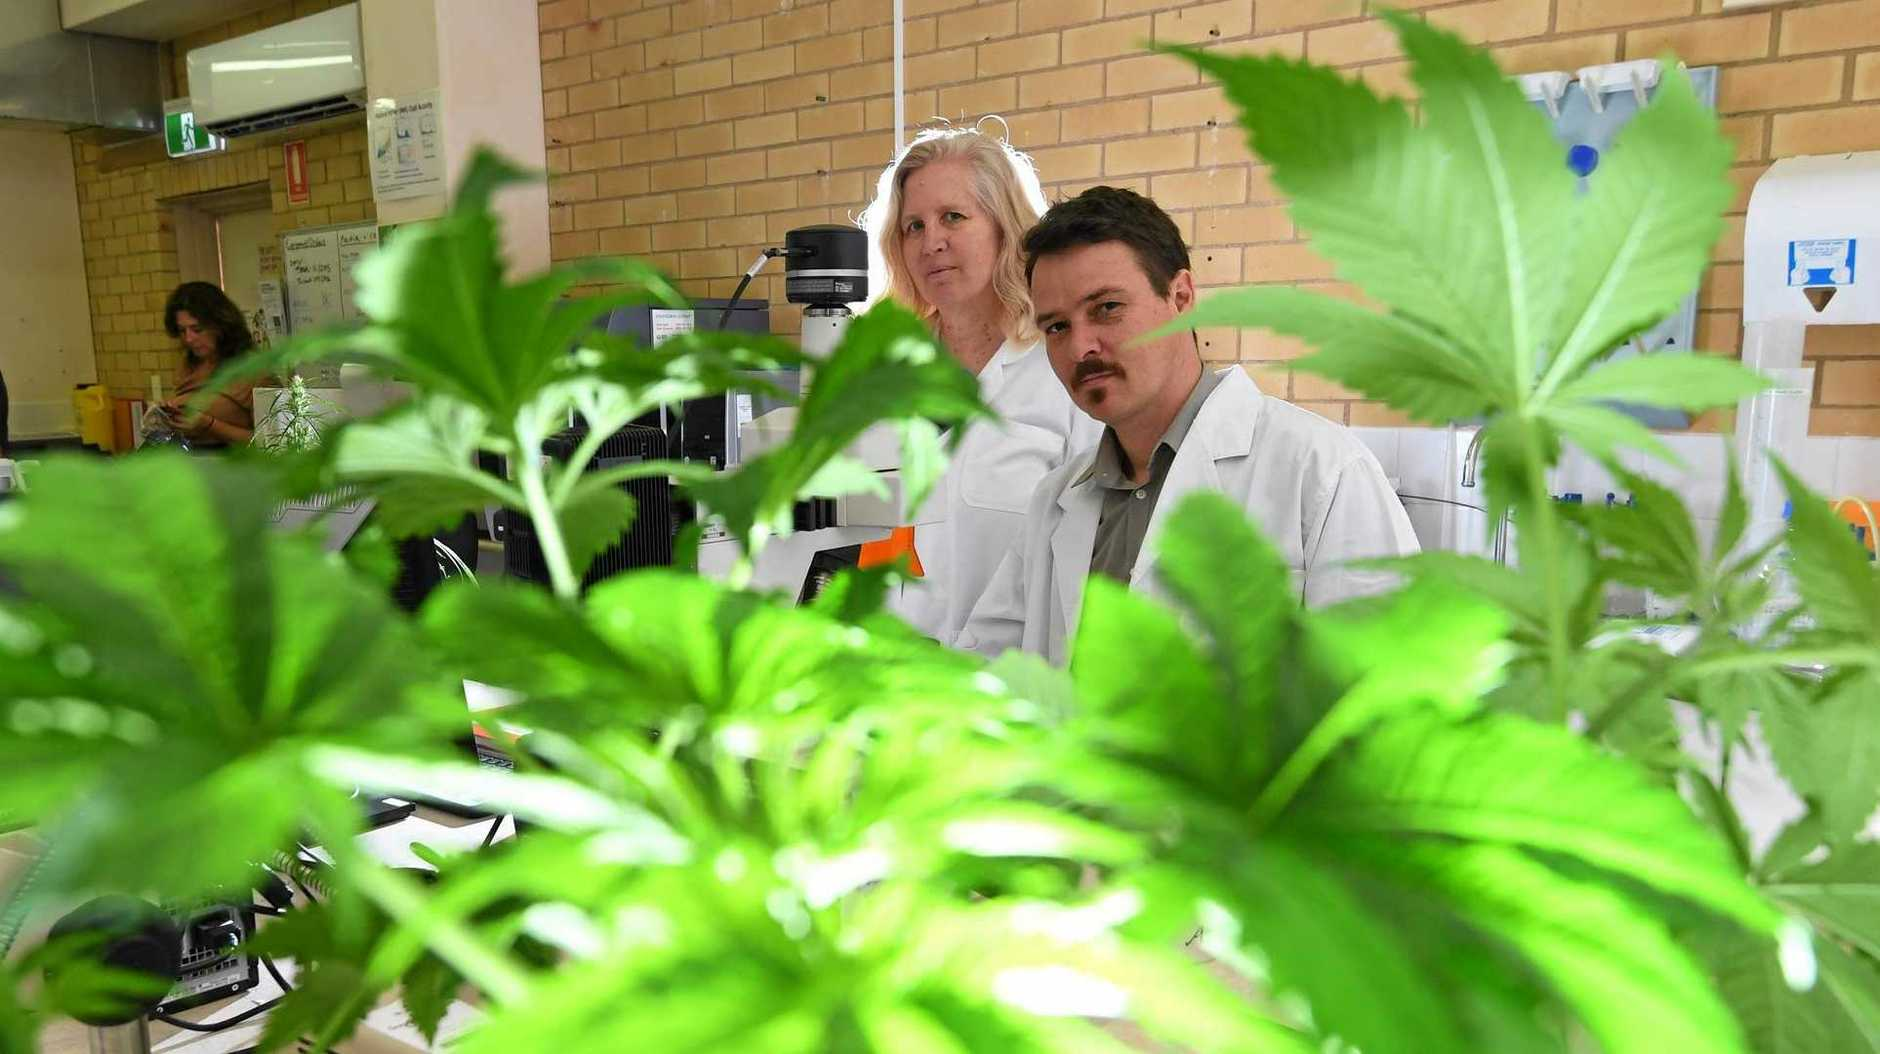 Associate Professor Bronwyn Barkla, Director of the Universitys Southern Cross Plant Science, and Associate Professor Tobias Kretzschmar will help to underpin pioneering research into the medicinal cannabis industry in NSW, analysing the plants physiology and biochemistry.